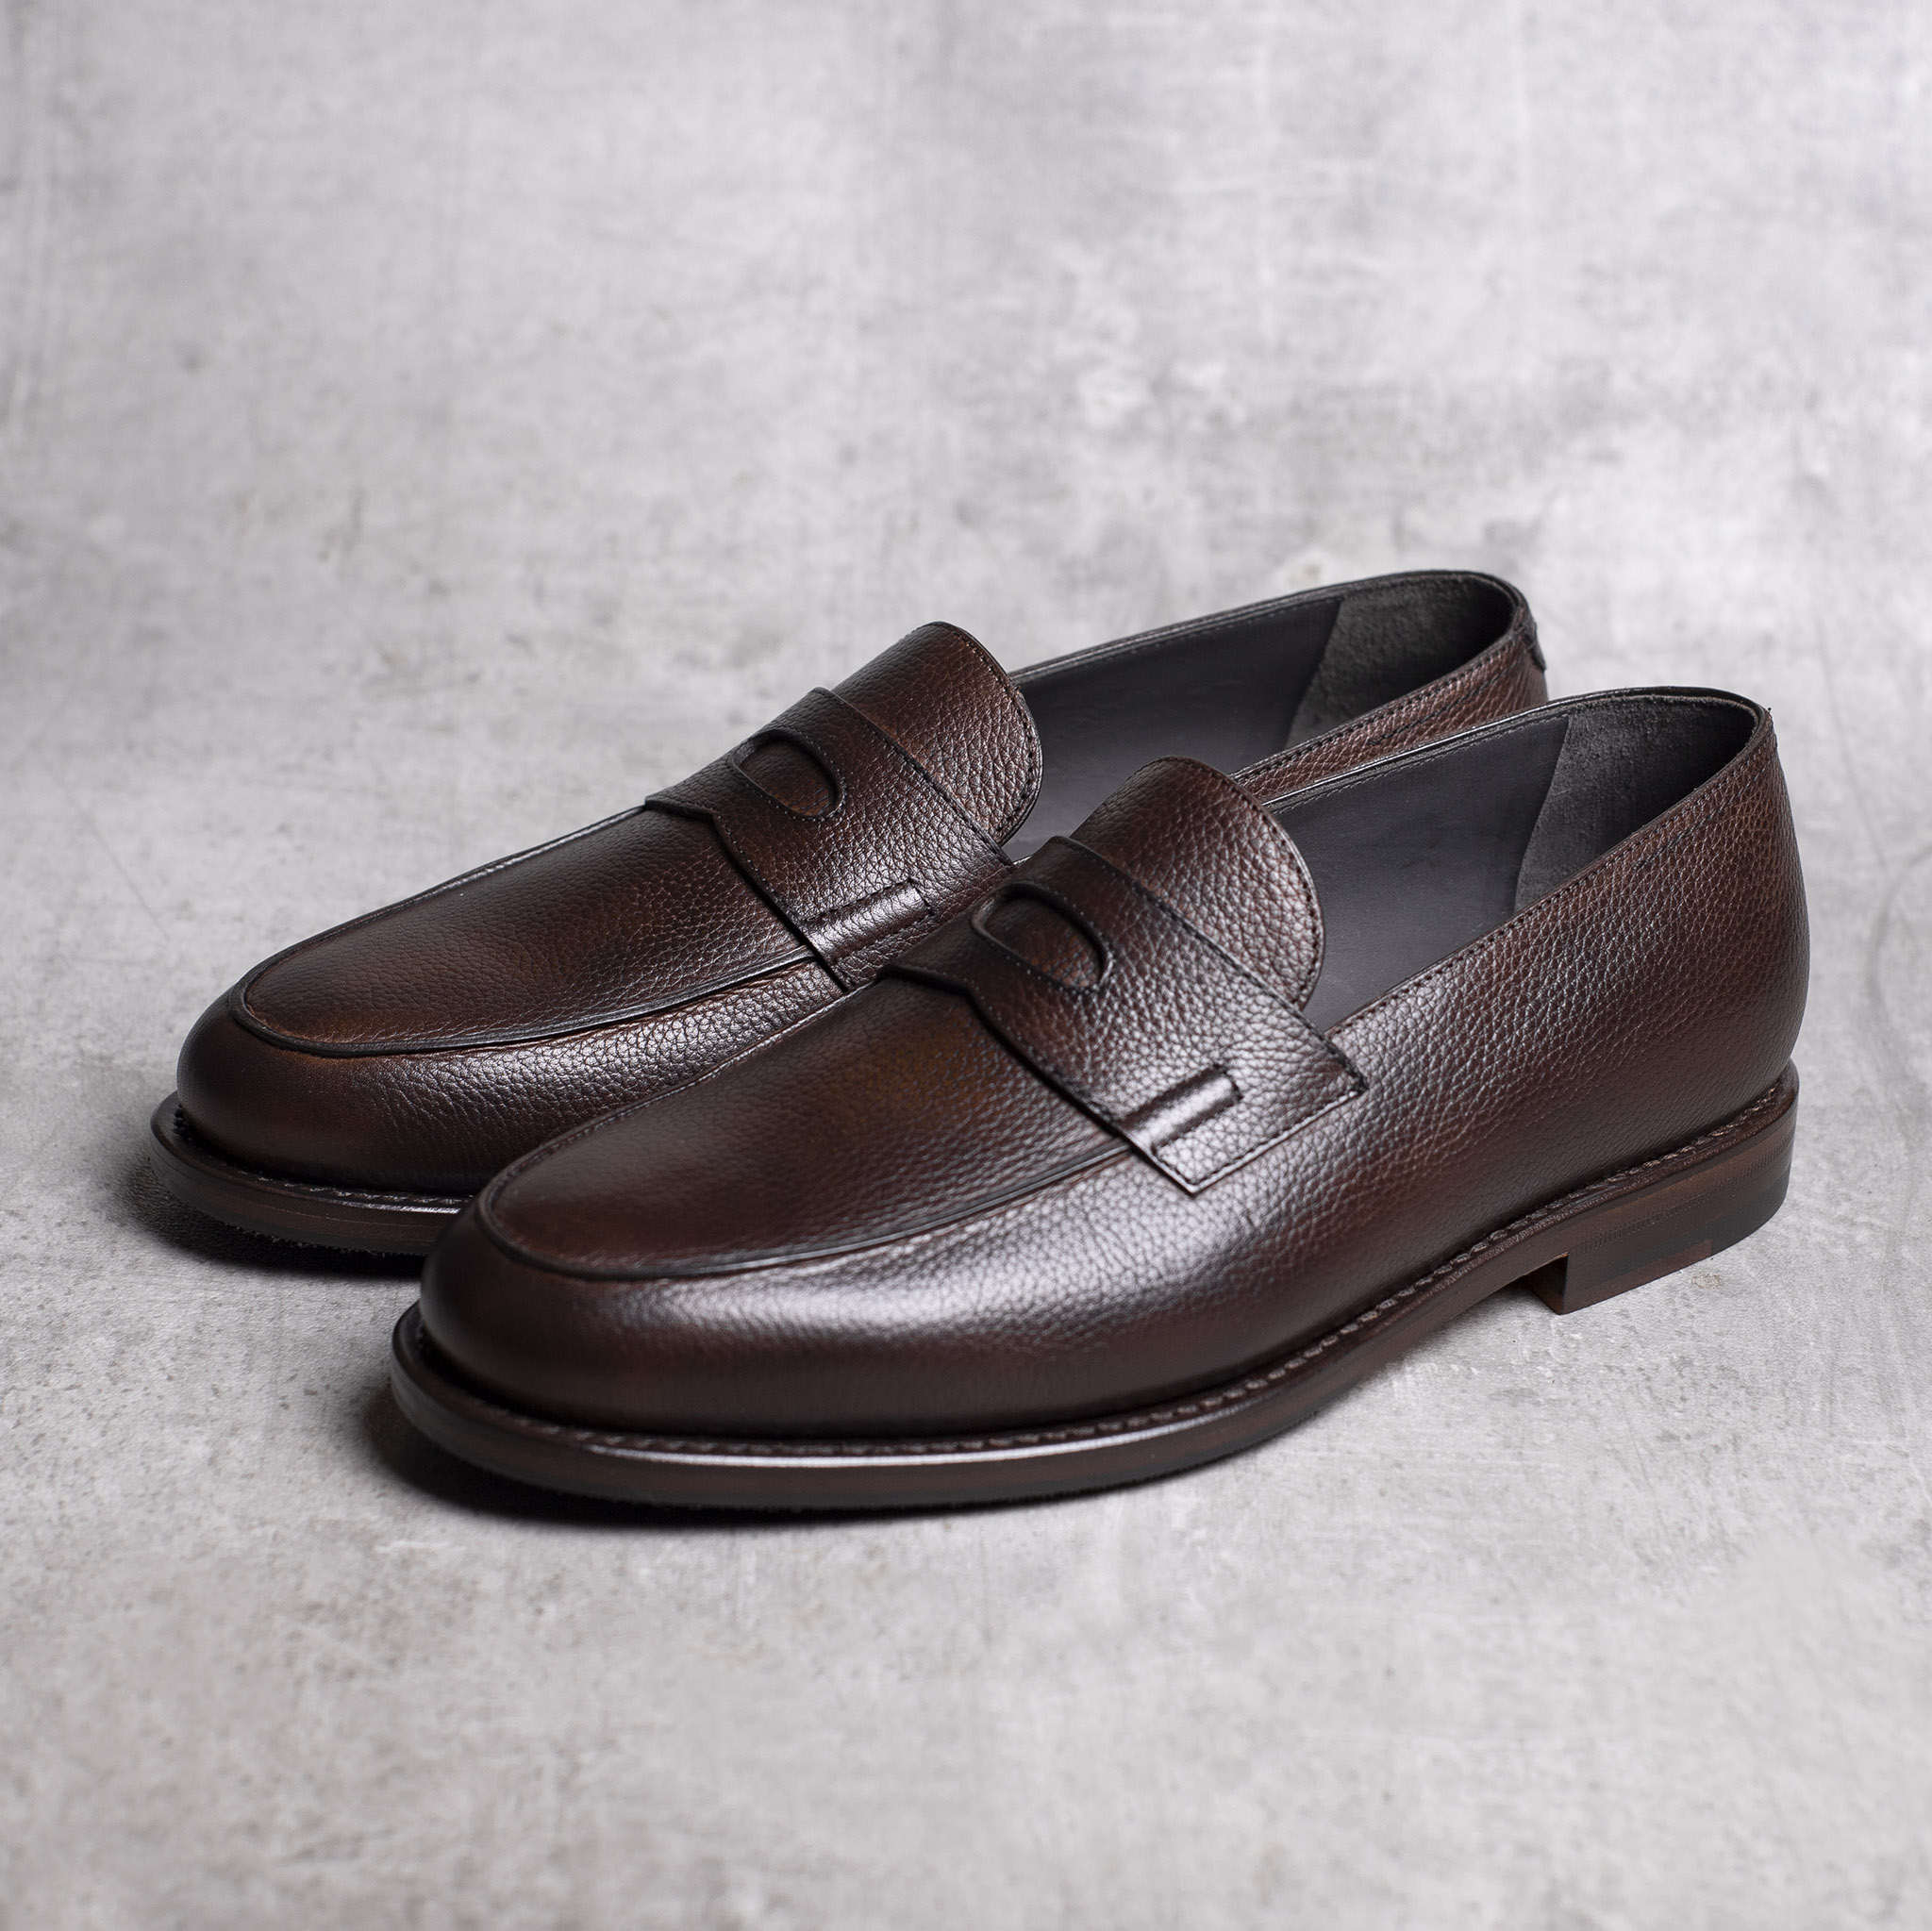 LOAFERS · 0647 Grain leather Toffee 2